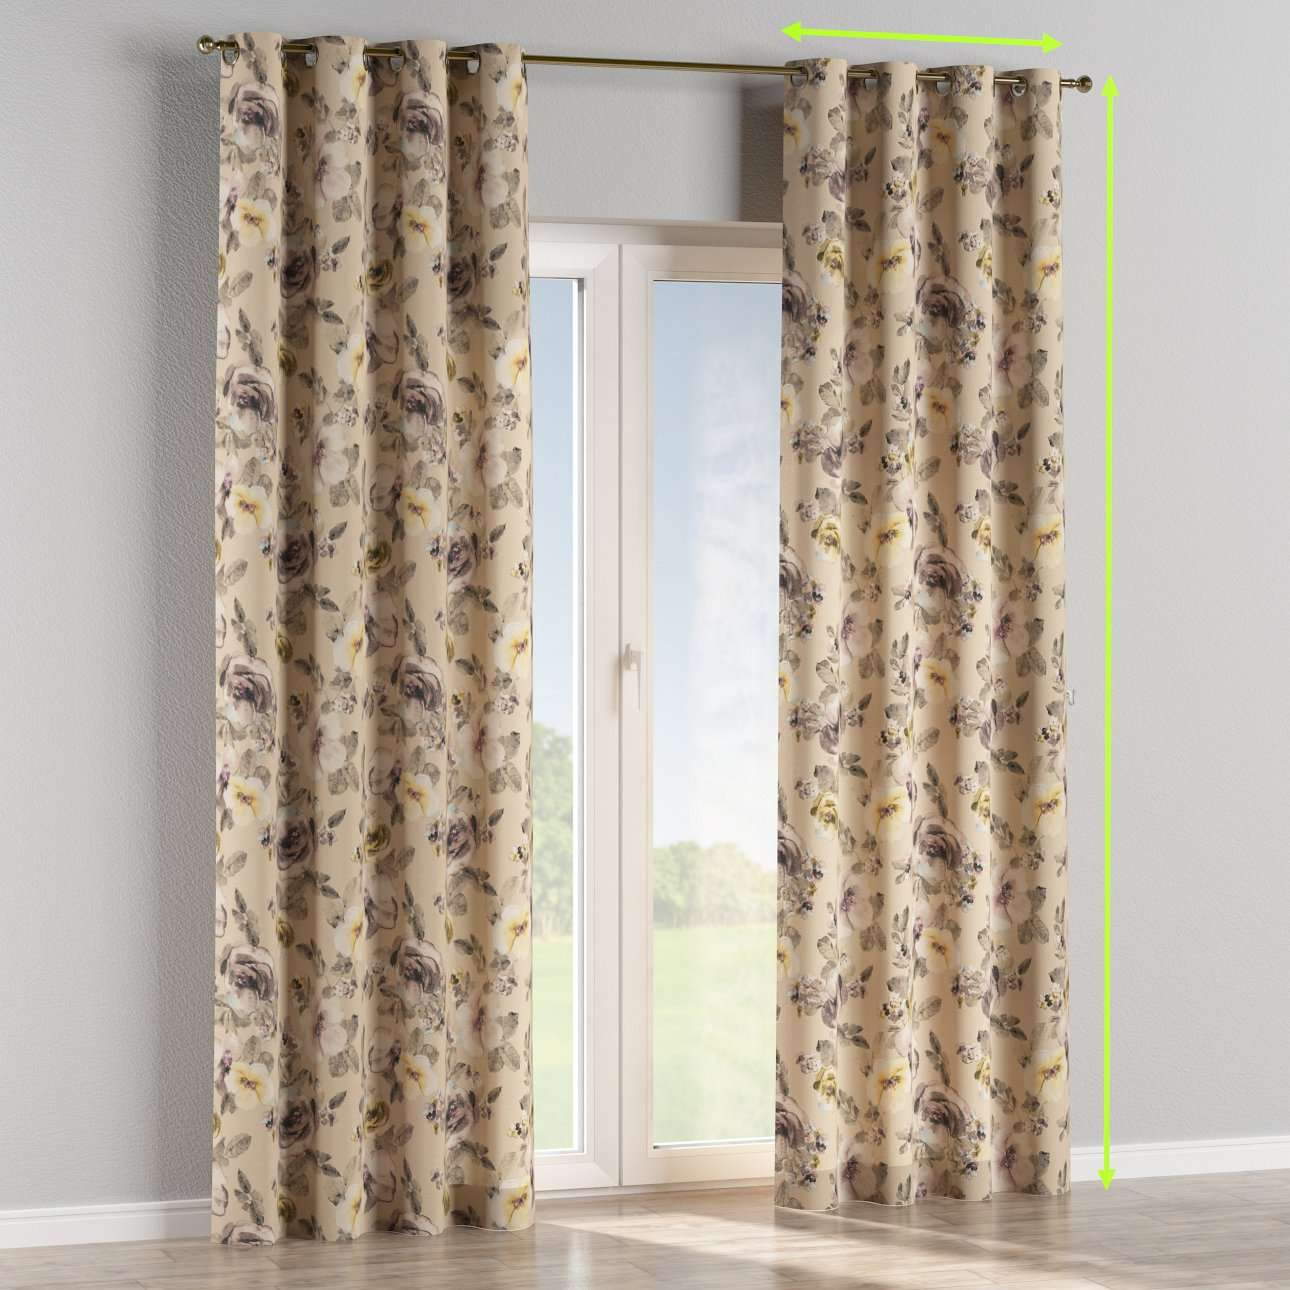 Eyelet curtains in collection Londres, fabric: 140-44